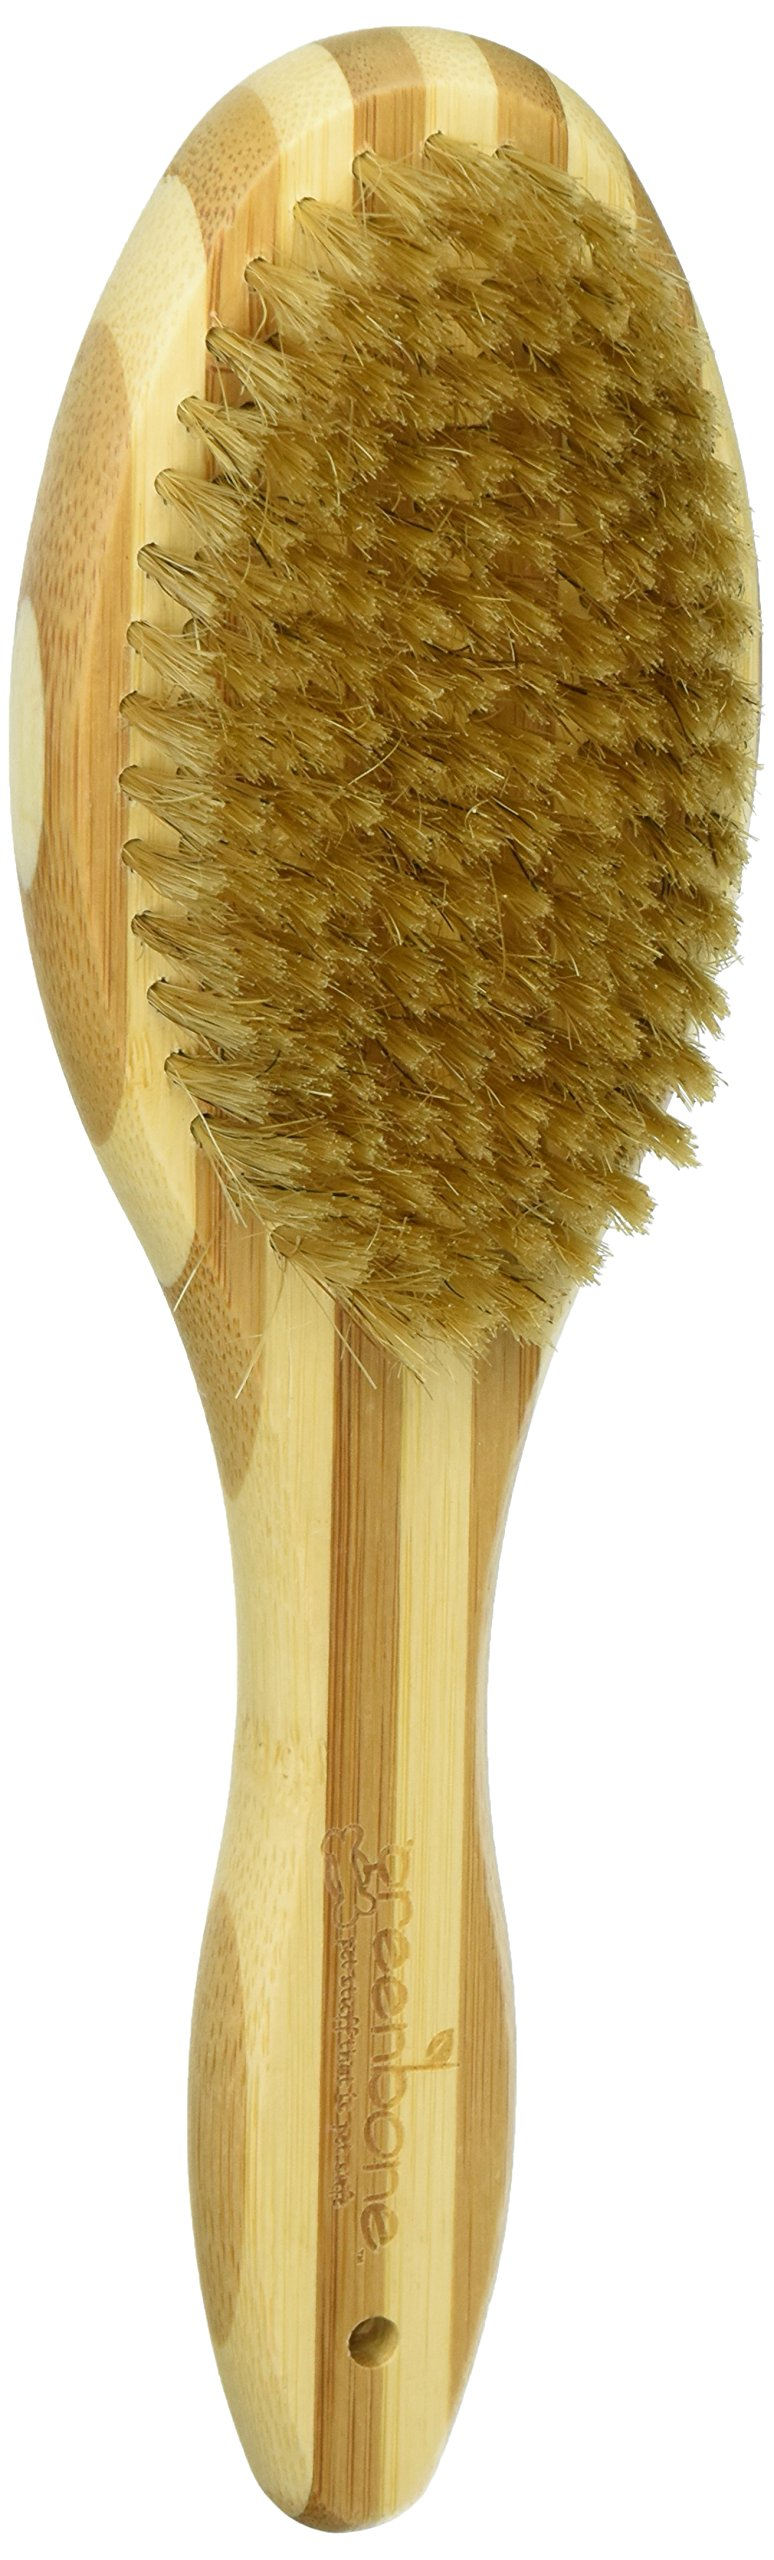 Greenbone All Natural Bamboo Pet Grooming Brushes - Made from Sustainable Materials (Bristle Brush) by Greenbone